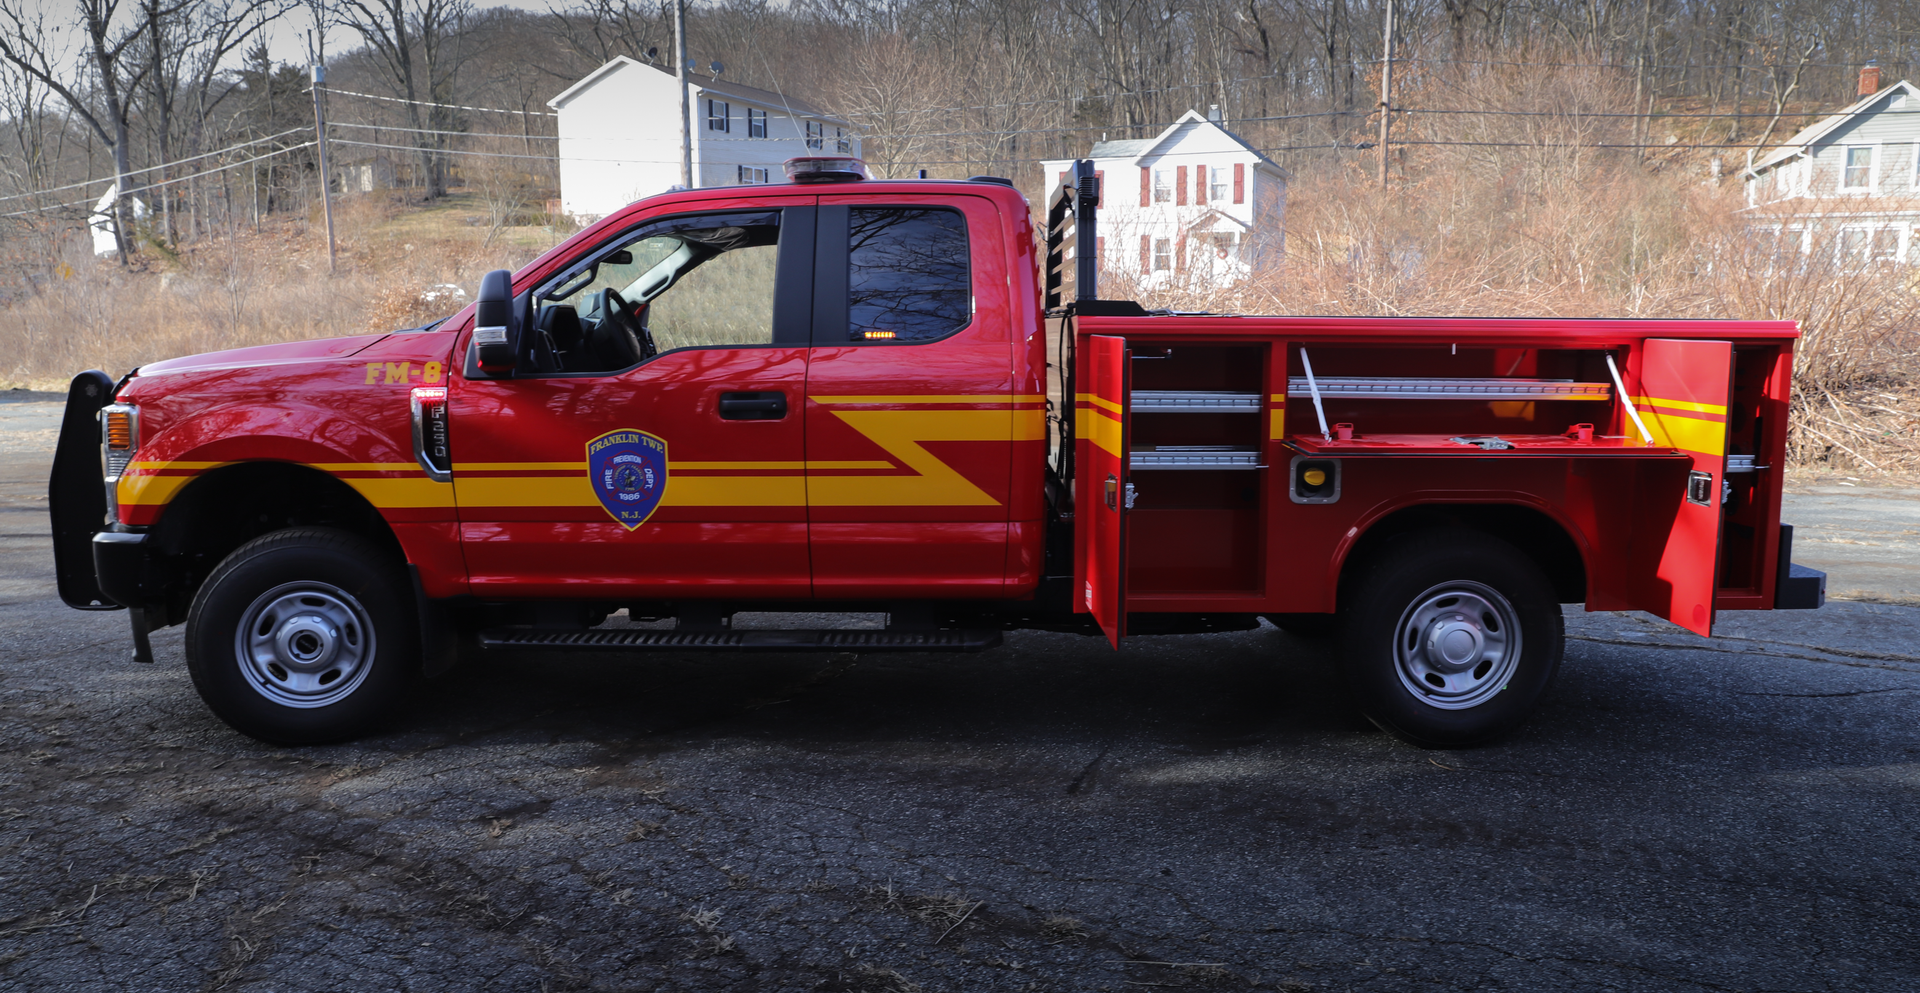 Franklin TWP Fire Prevention